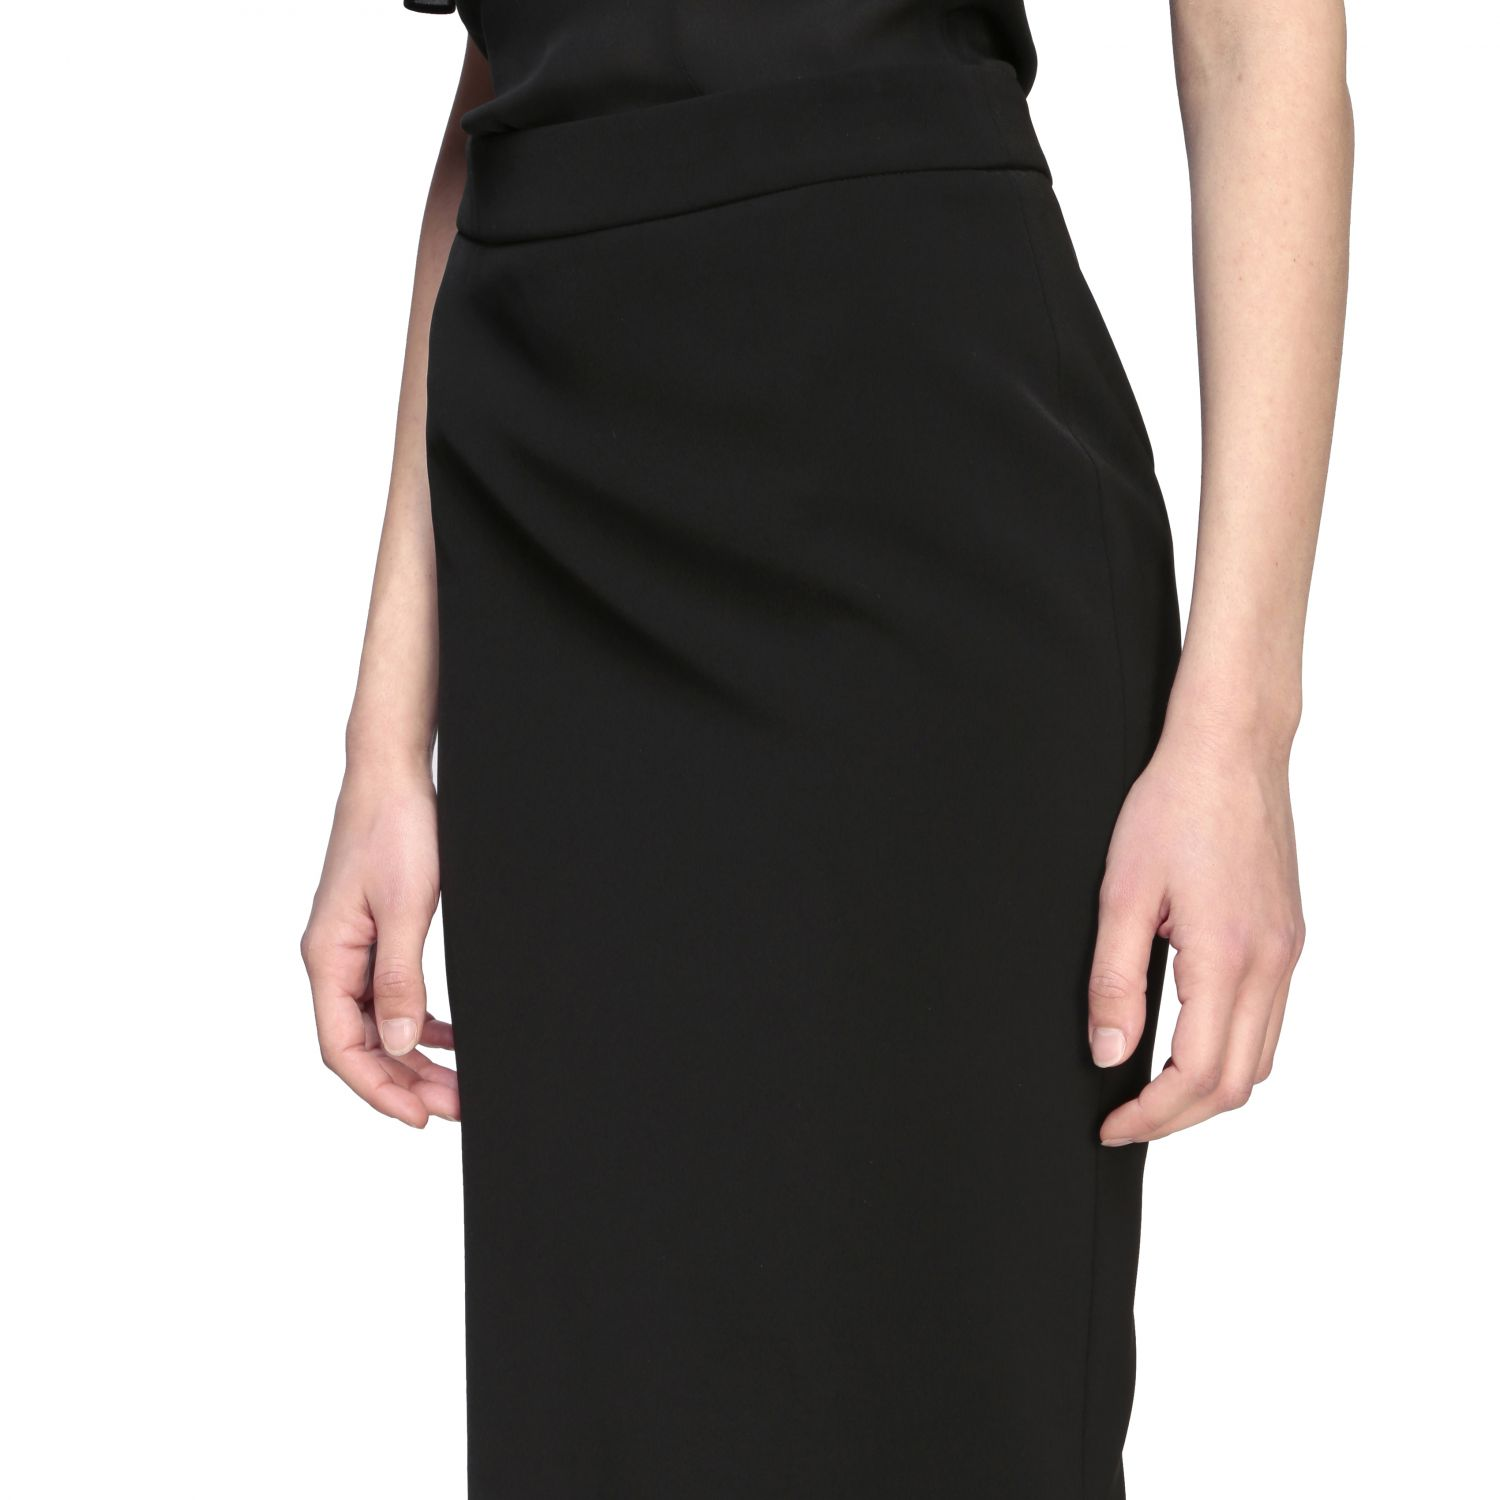 Skirt Boutique Moschino: Skirt women Boutique Moschino black 5